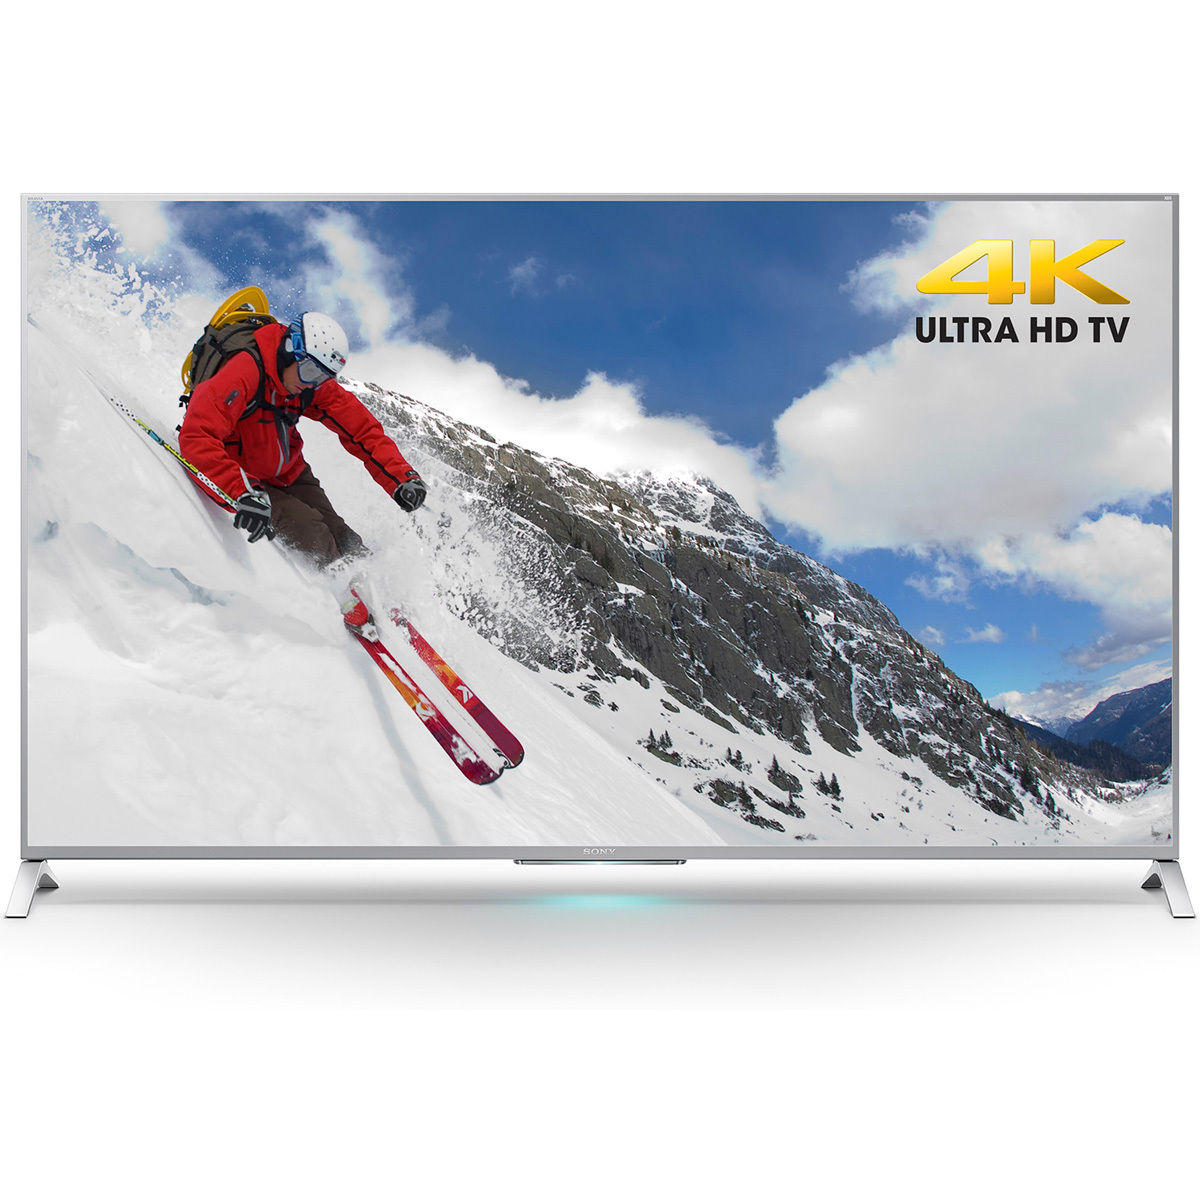 Sony XBR-55X800B - 55-inch 4K Ultra HD Smart LED TV Motionflow XR 240